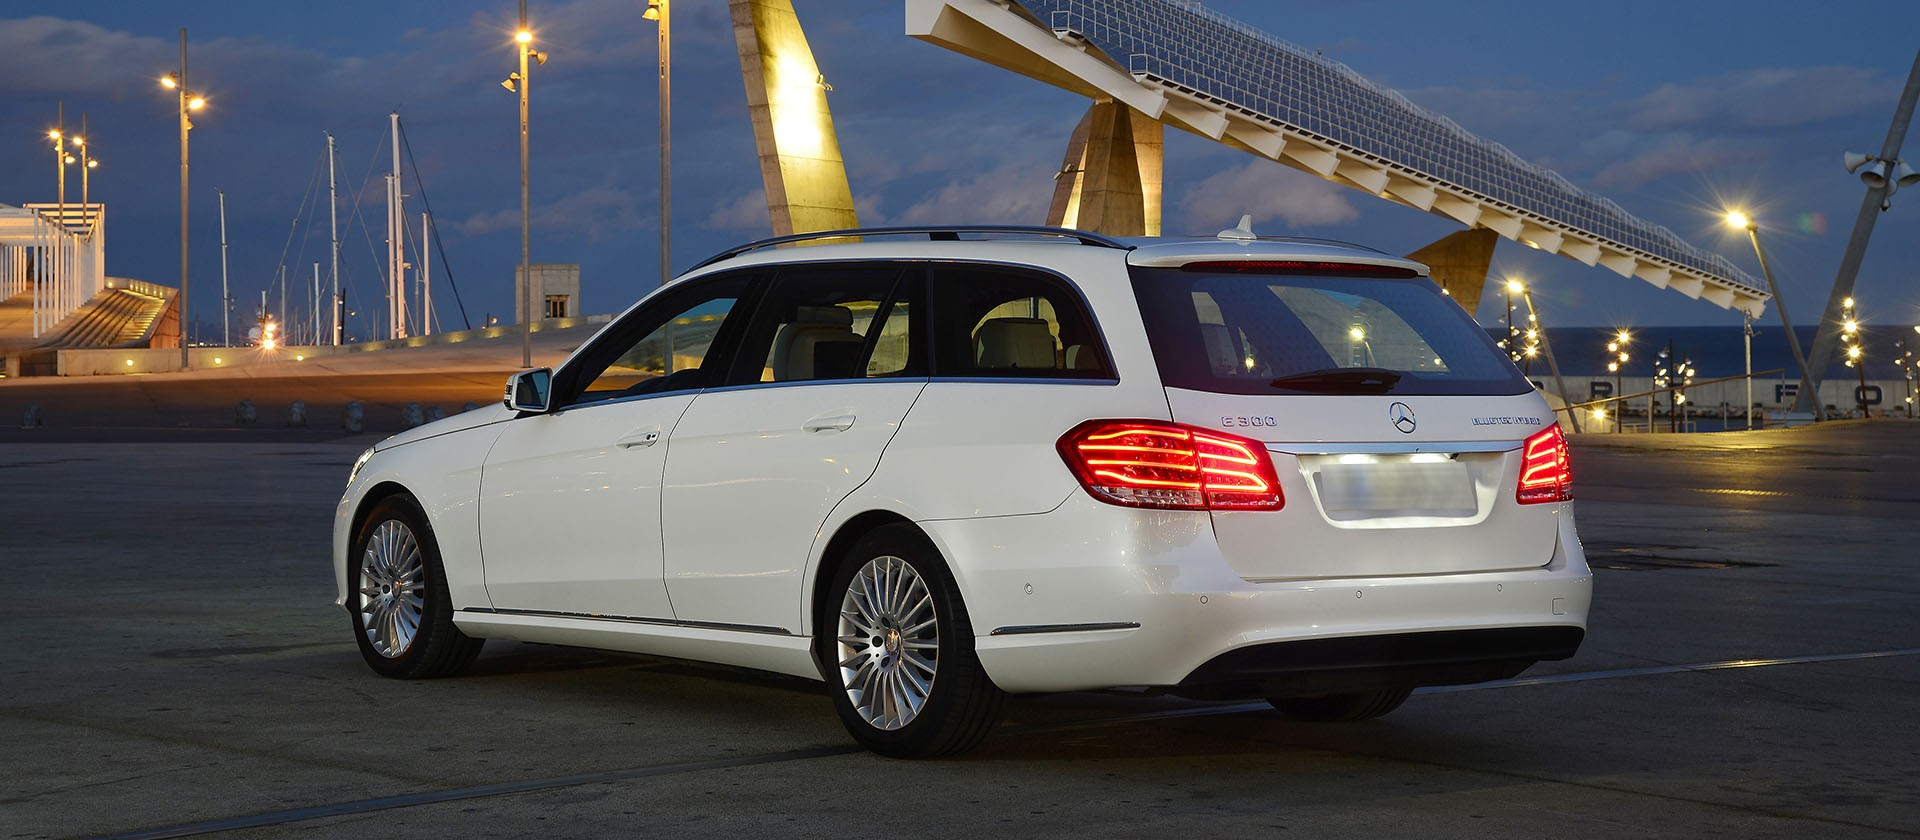 Car Hire Manchester Airport Reviews